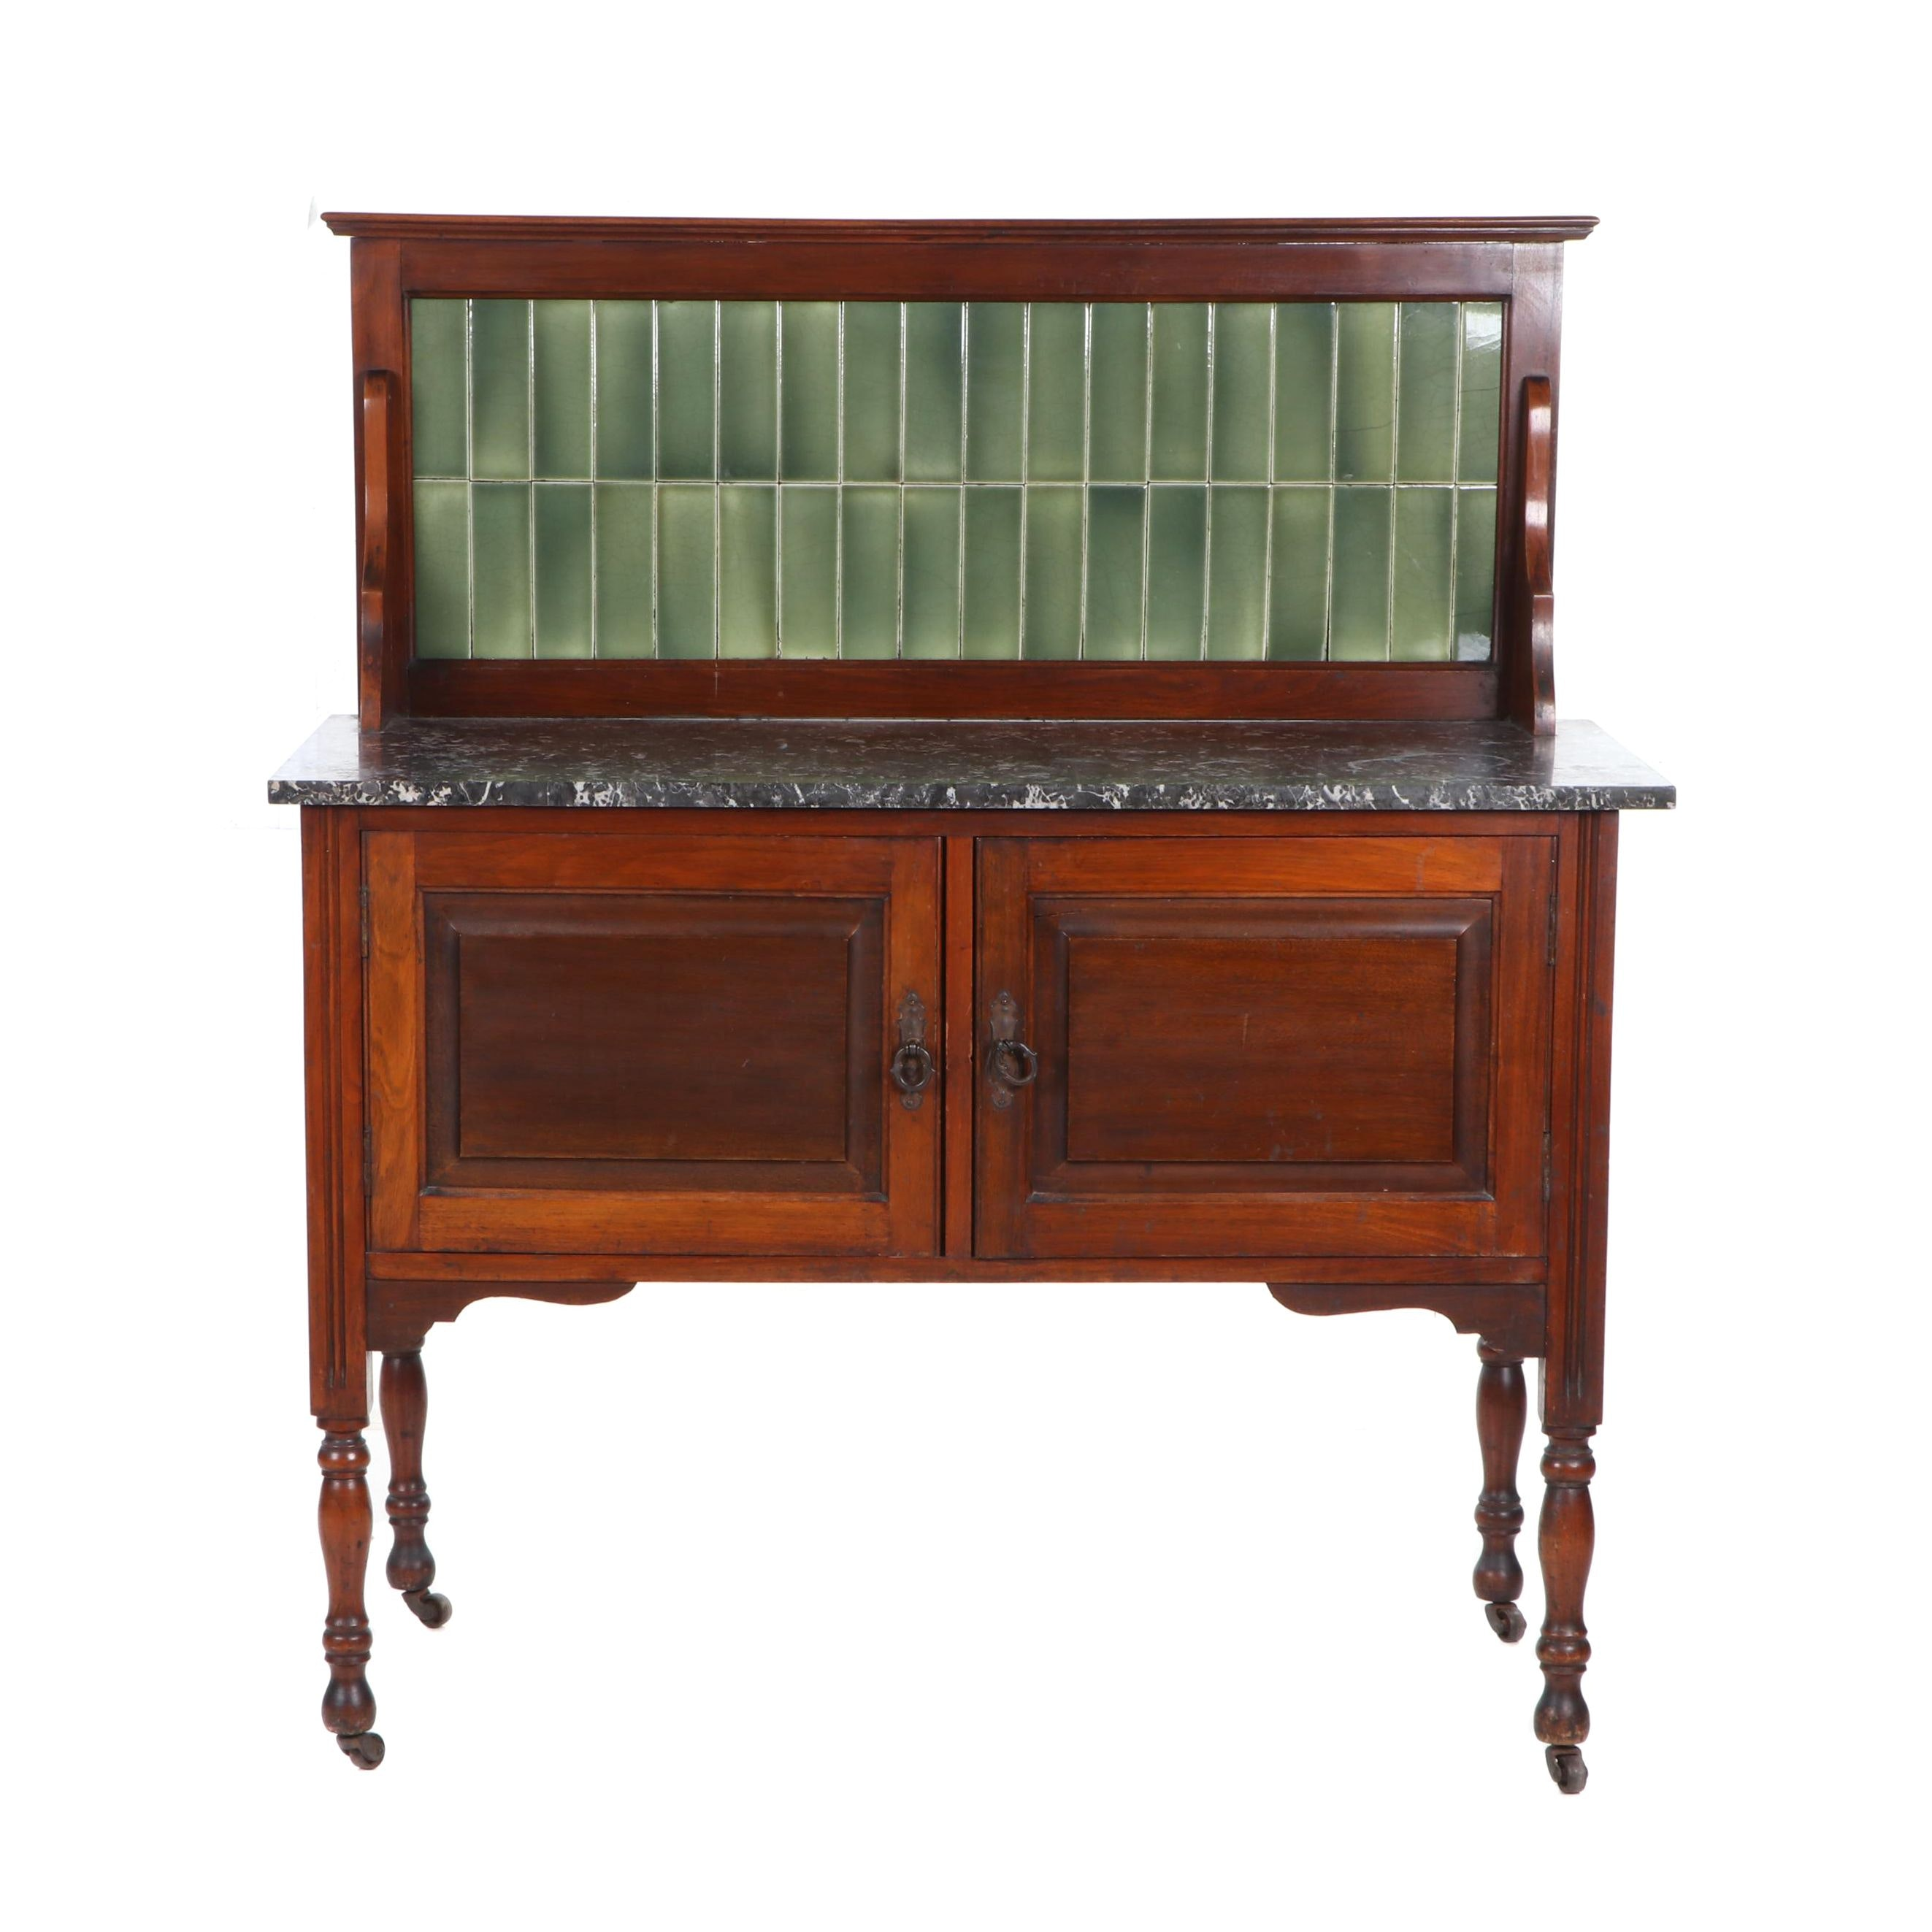 Early 20th Century Mahogany Tile-Back Server with Marble Top